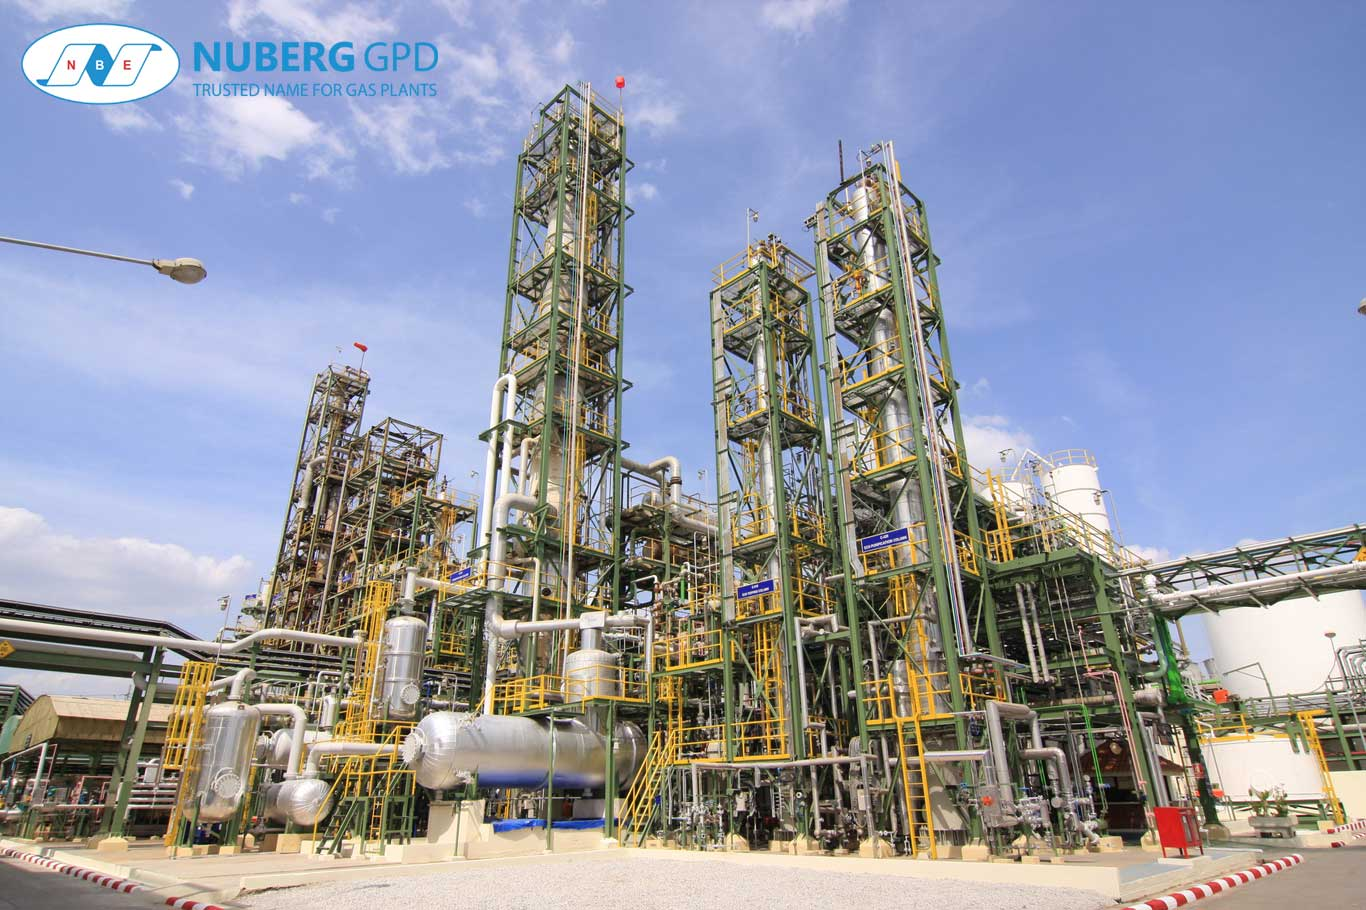 Methanol Cracking Hydrogen Plant Nuberg Gpd